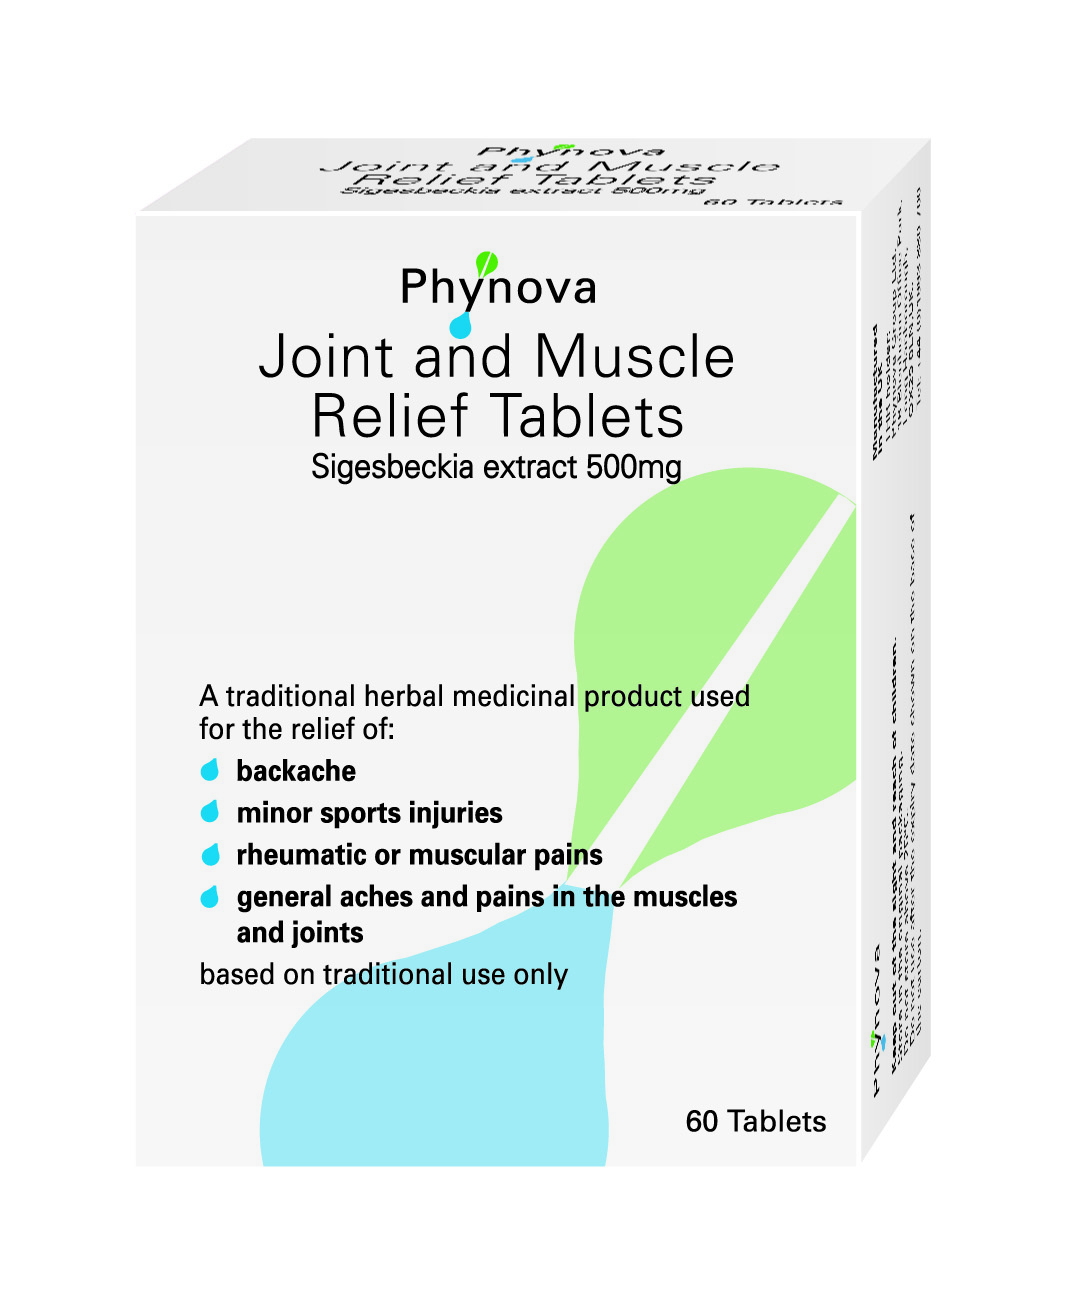 Phynova Joint and Muscle Relief Tablets